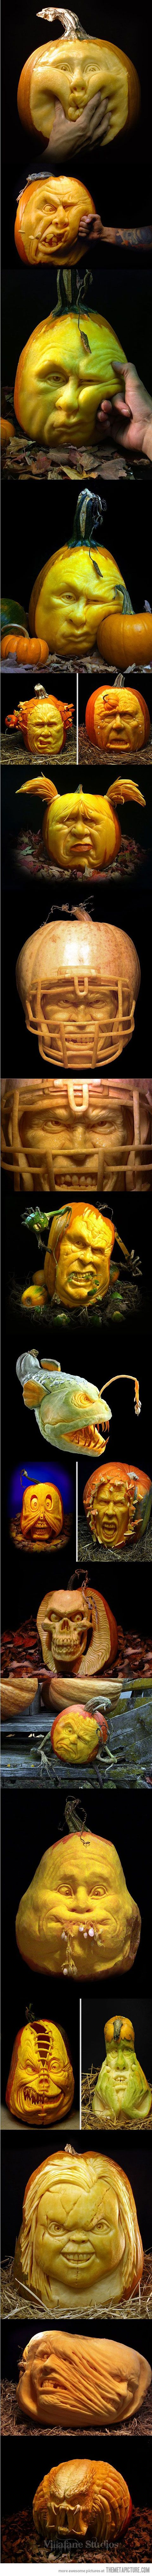 pumpkin carvings! This guy is CRAZY talented!!